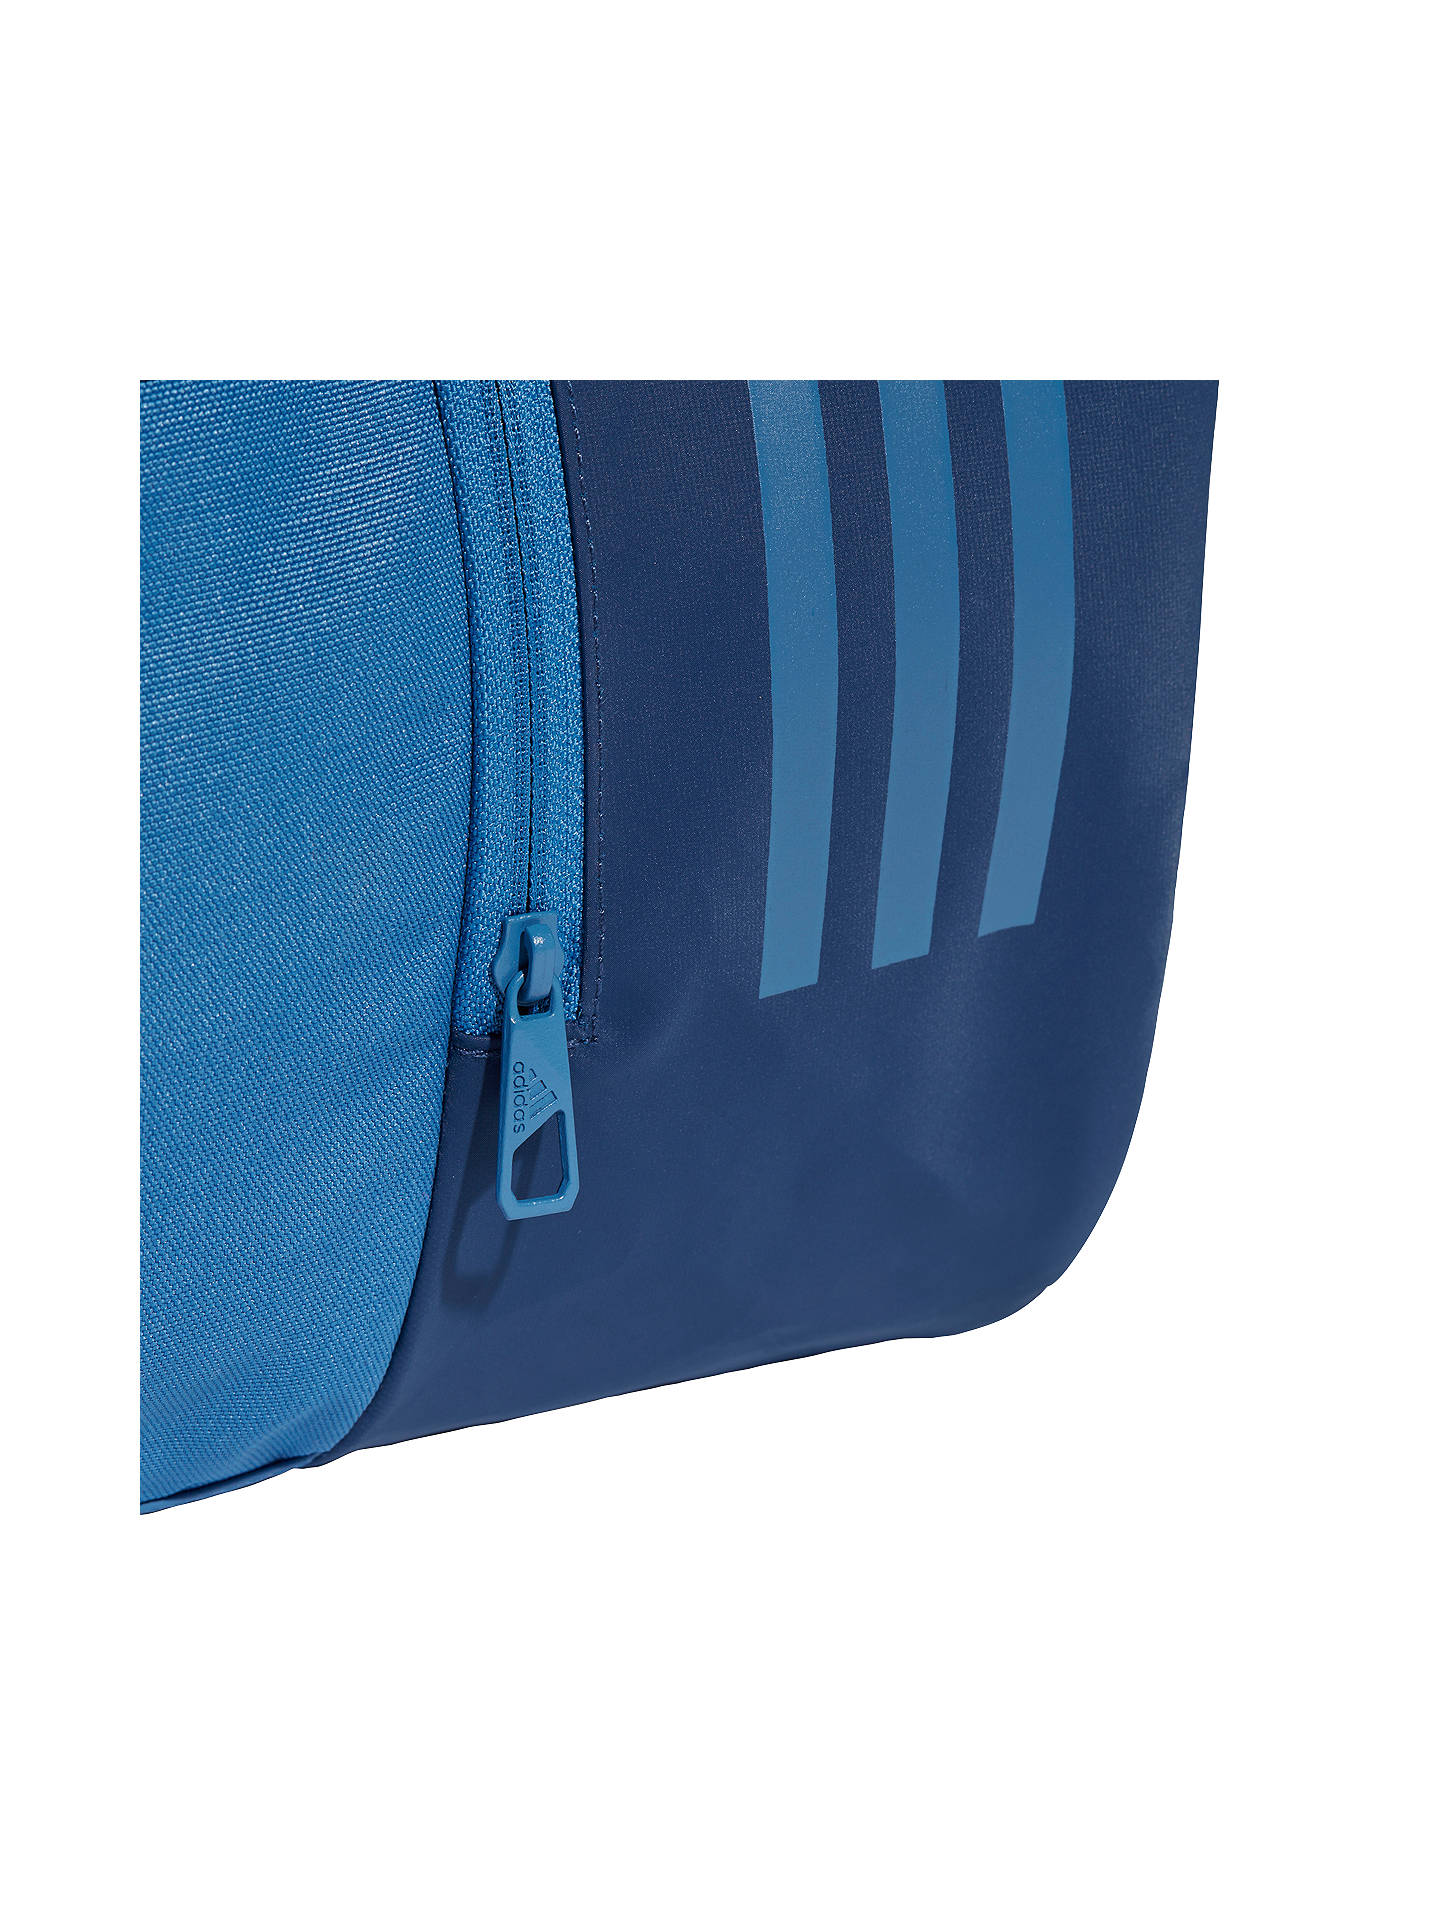 d4b2617b14 ... Buy adidas Convertible 3-Stripes Duffle Bag